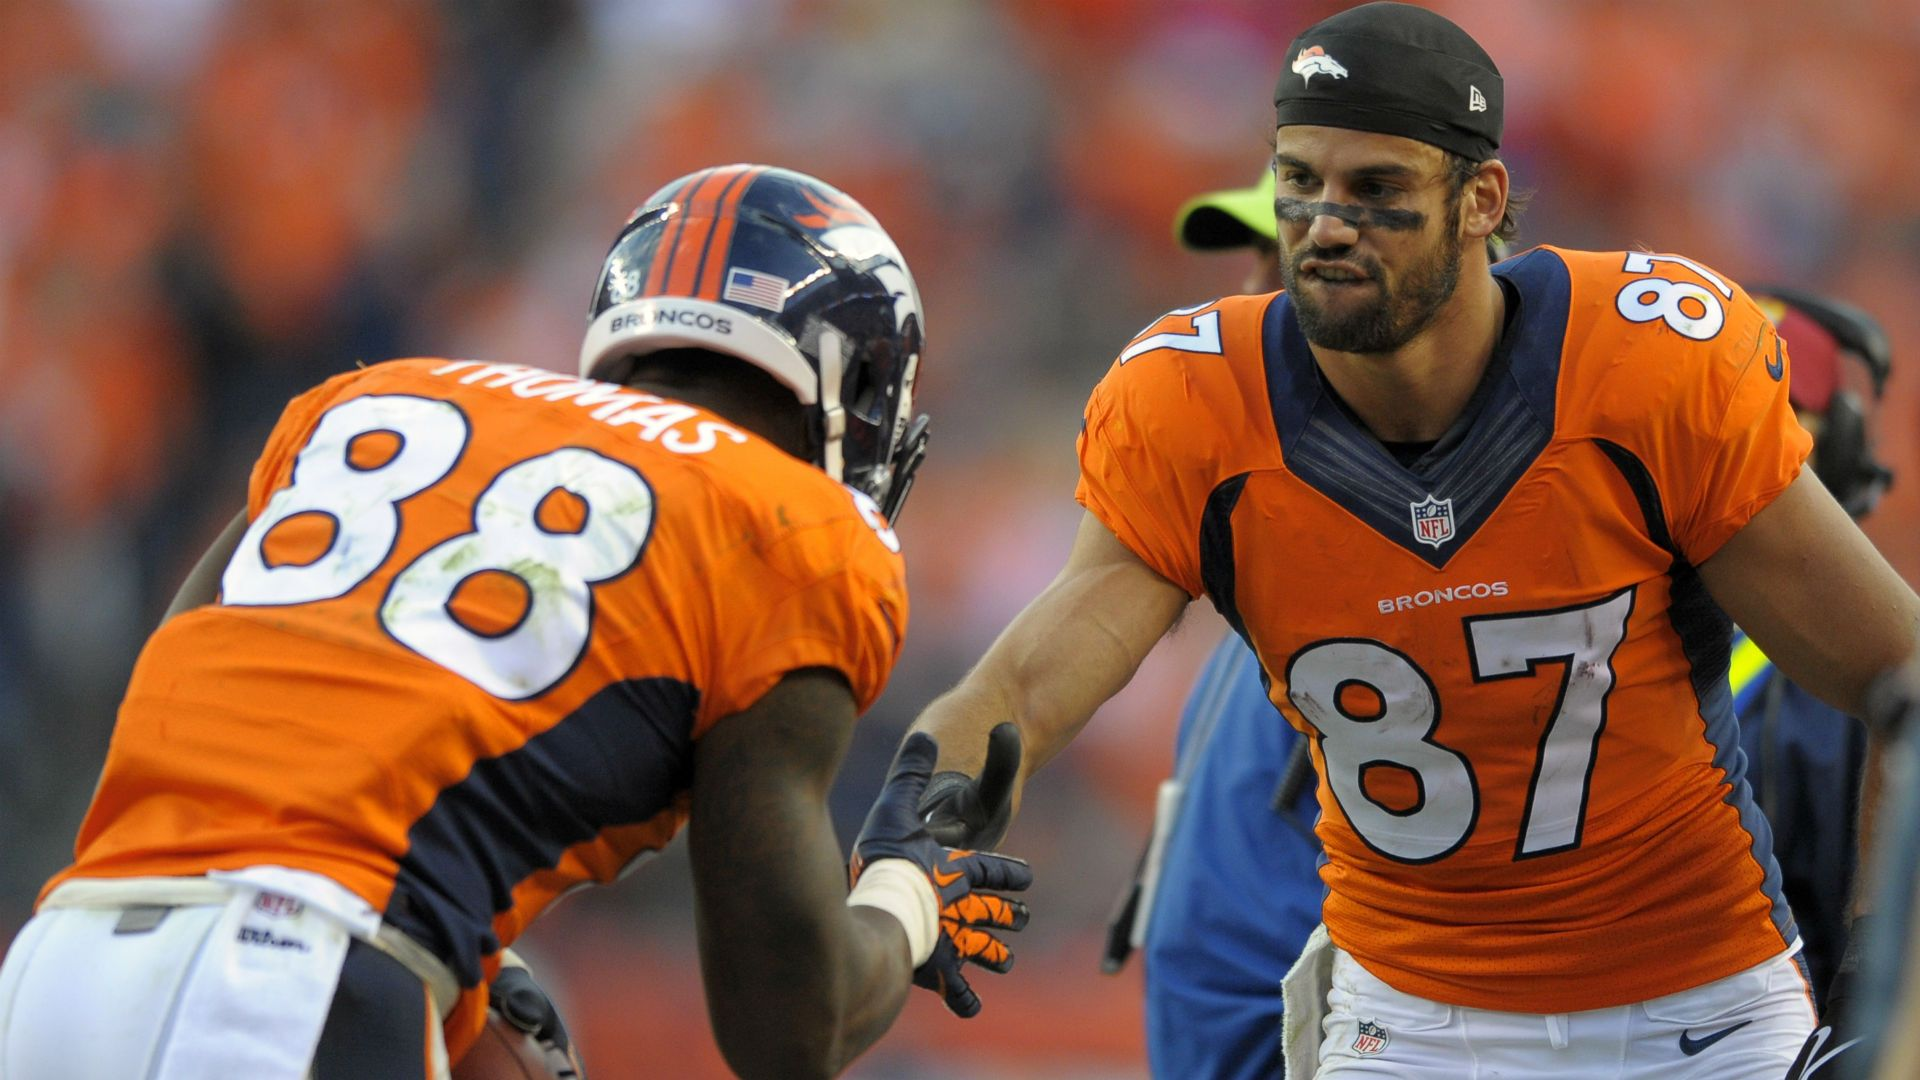 Demaryius Thomas And Eric Decker Wallpaper godstyle keywords and ...